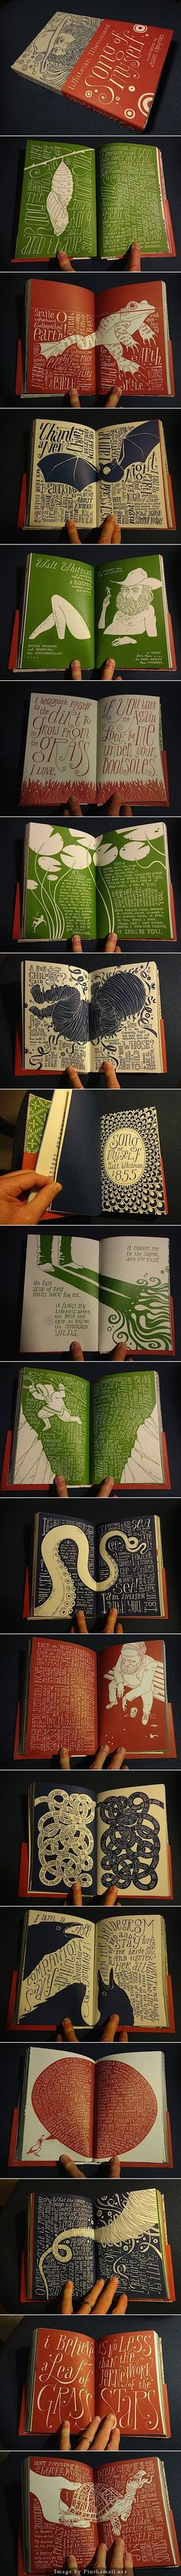 Whitman Illuminated: A Song of Myself | Hand Illustrated Book by Allen Crawford